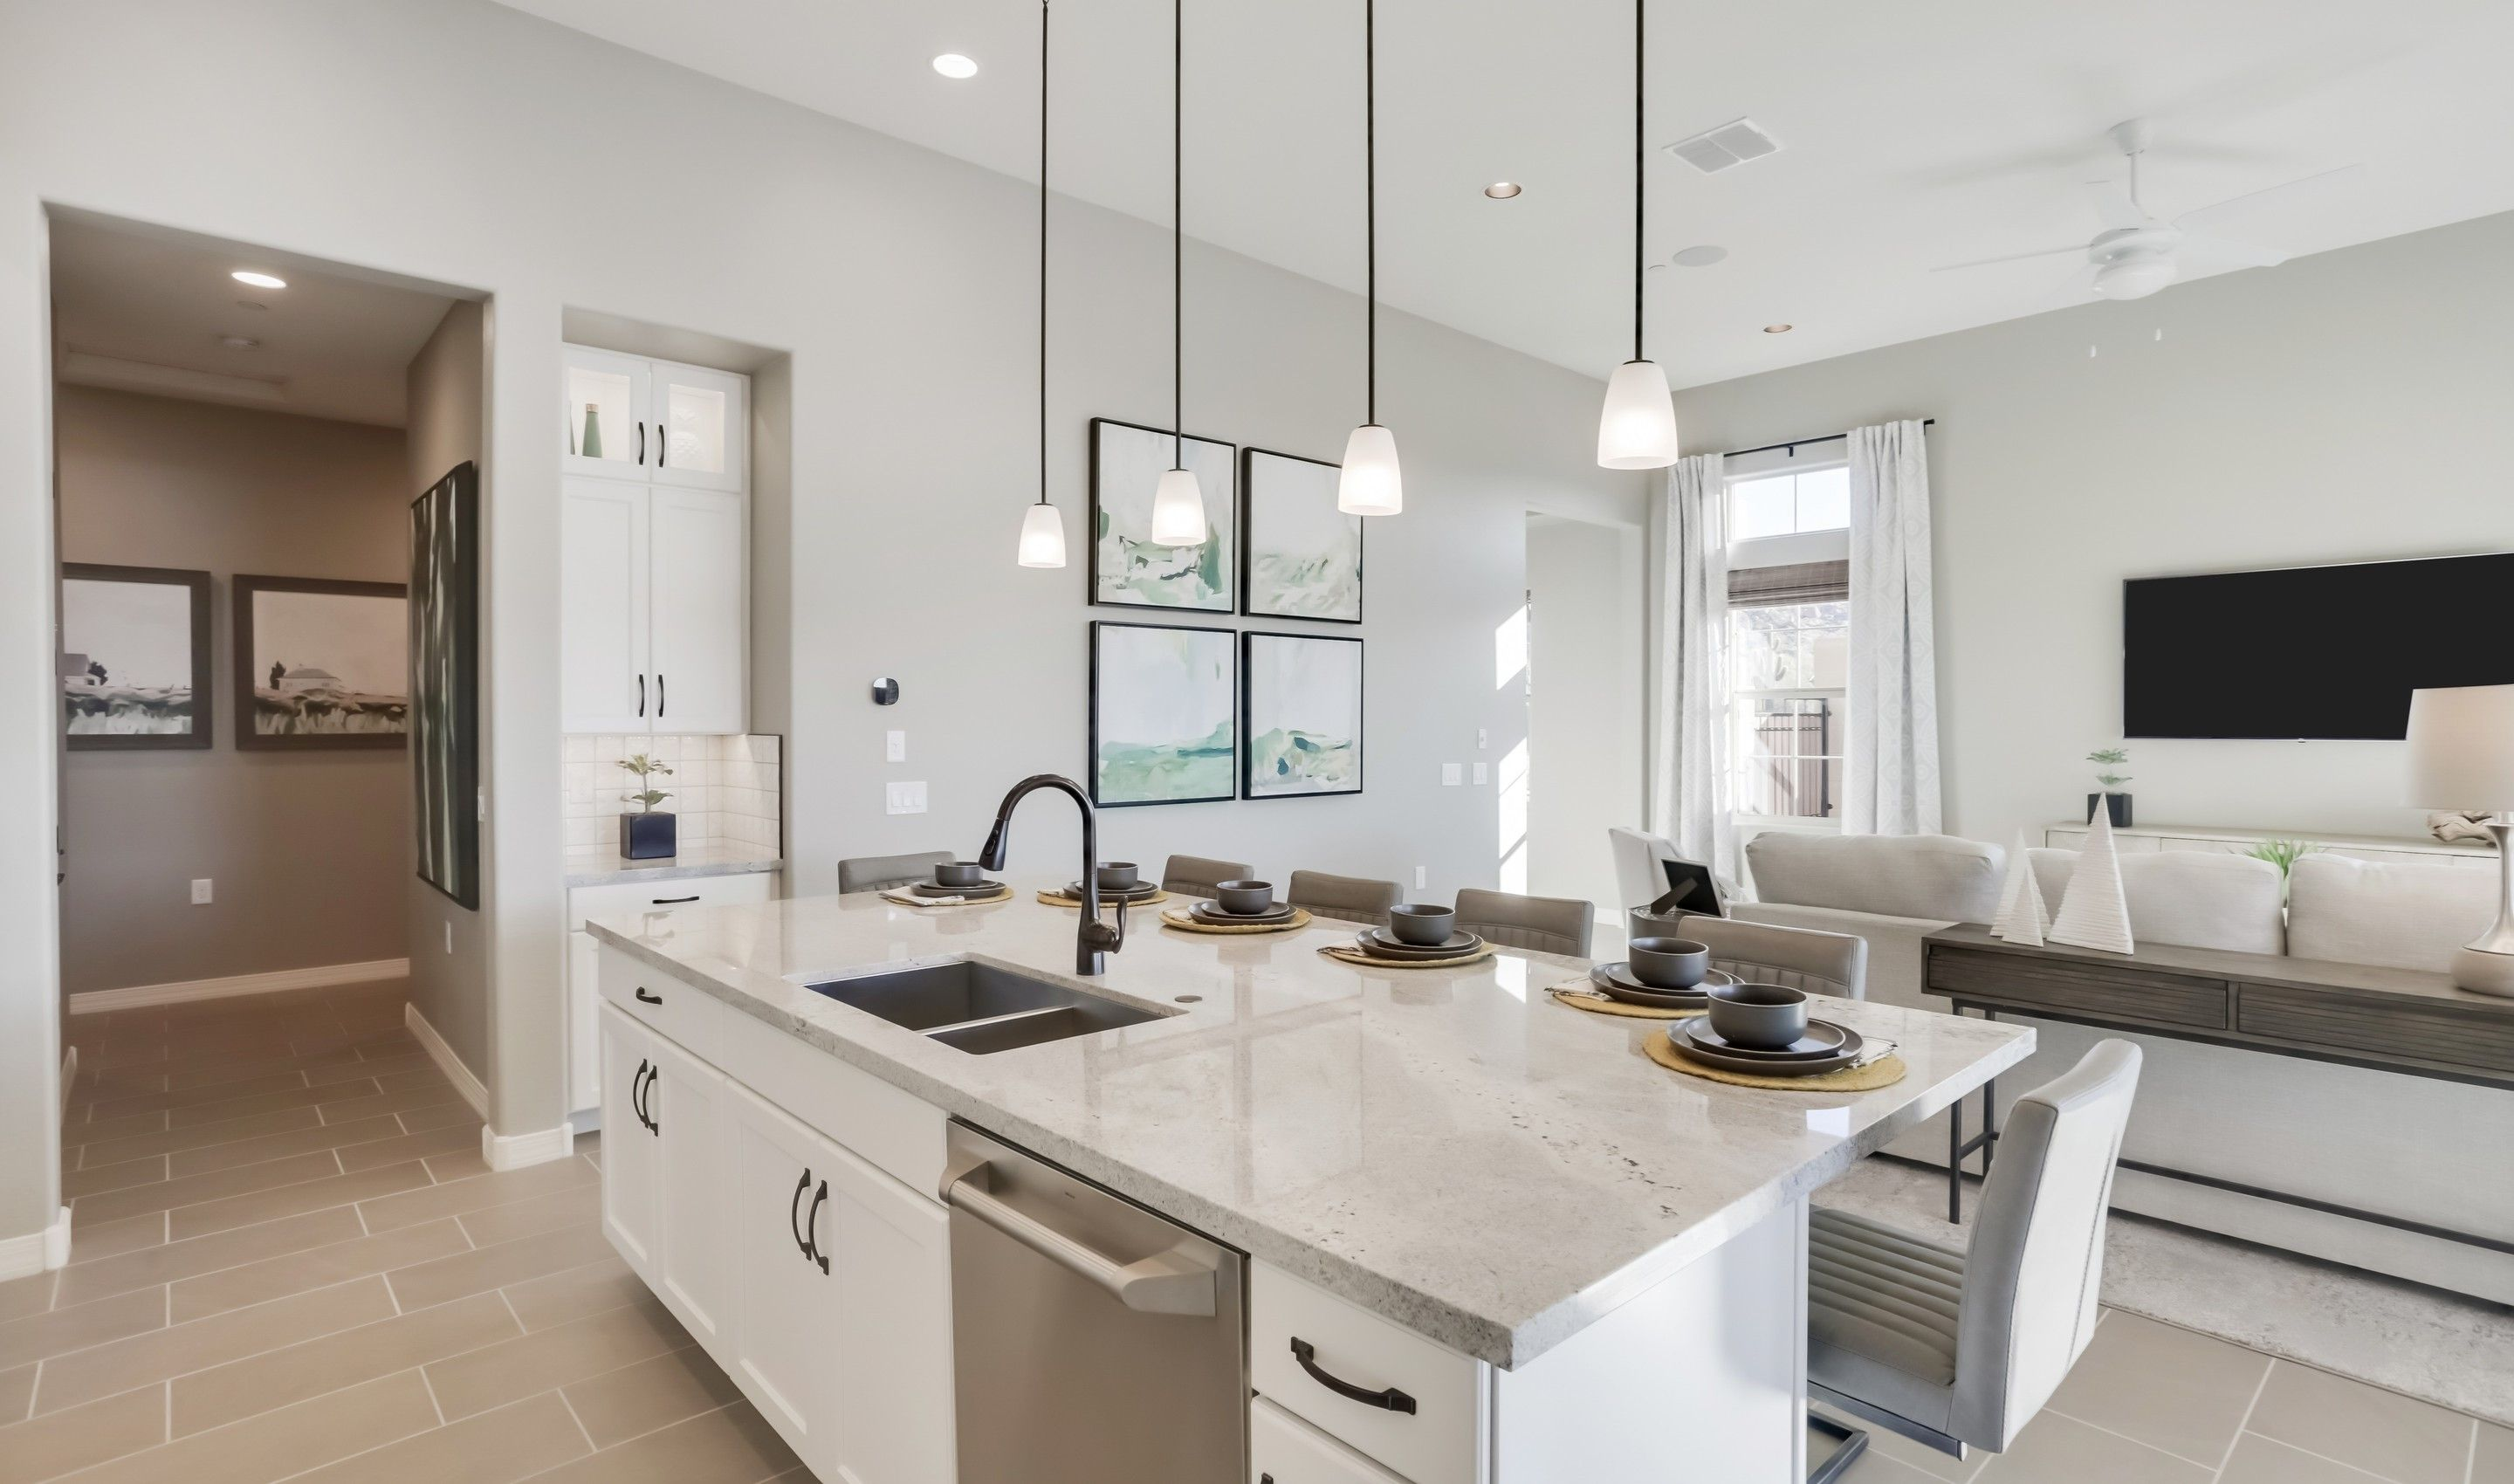 Kitchen featured in the Apex By K. Hovnanian® Homes in Phoenix-Mesa, AZ